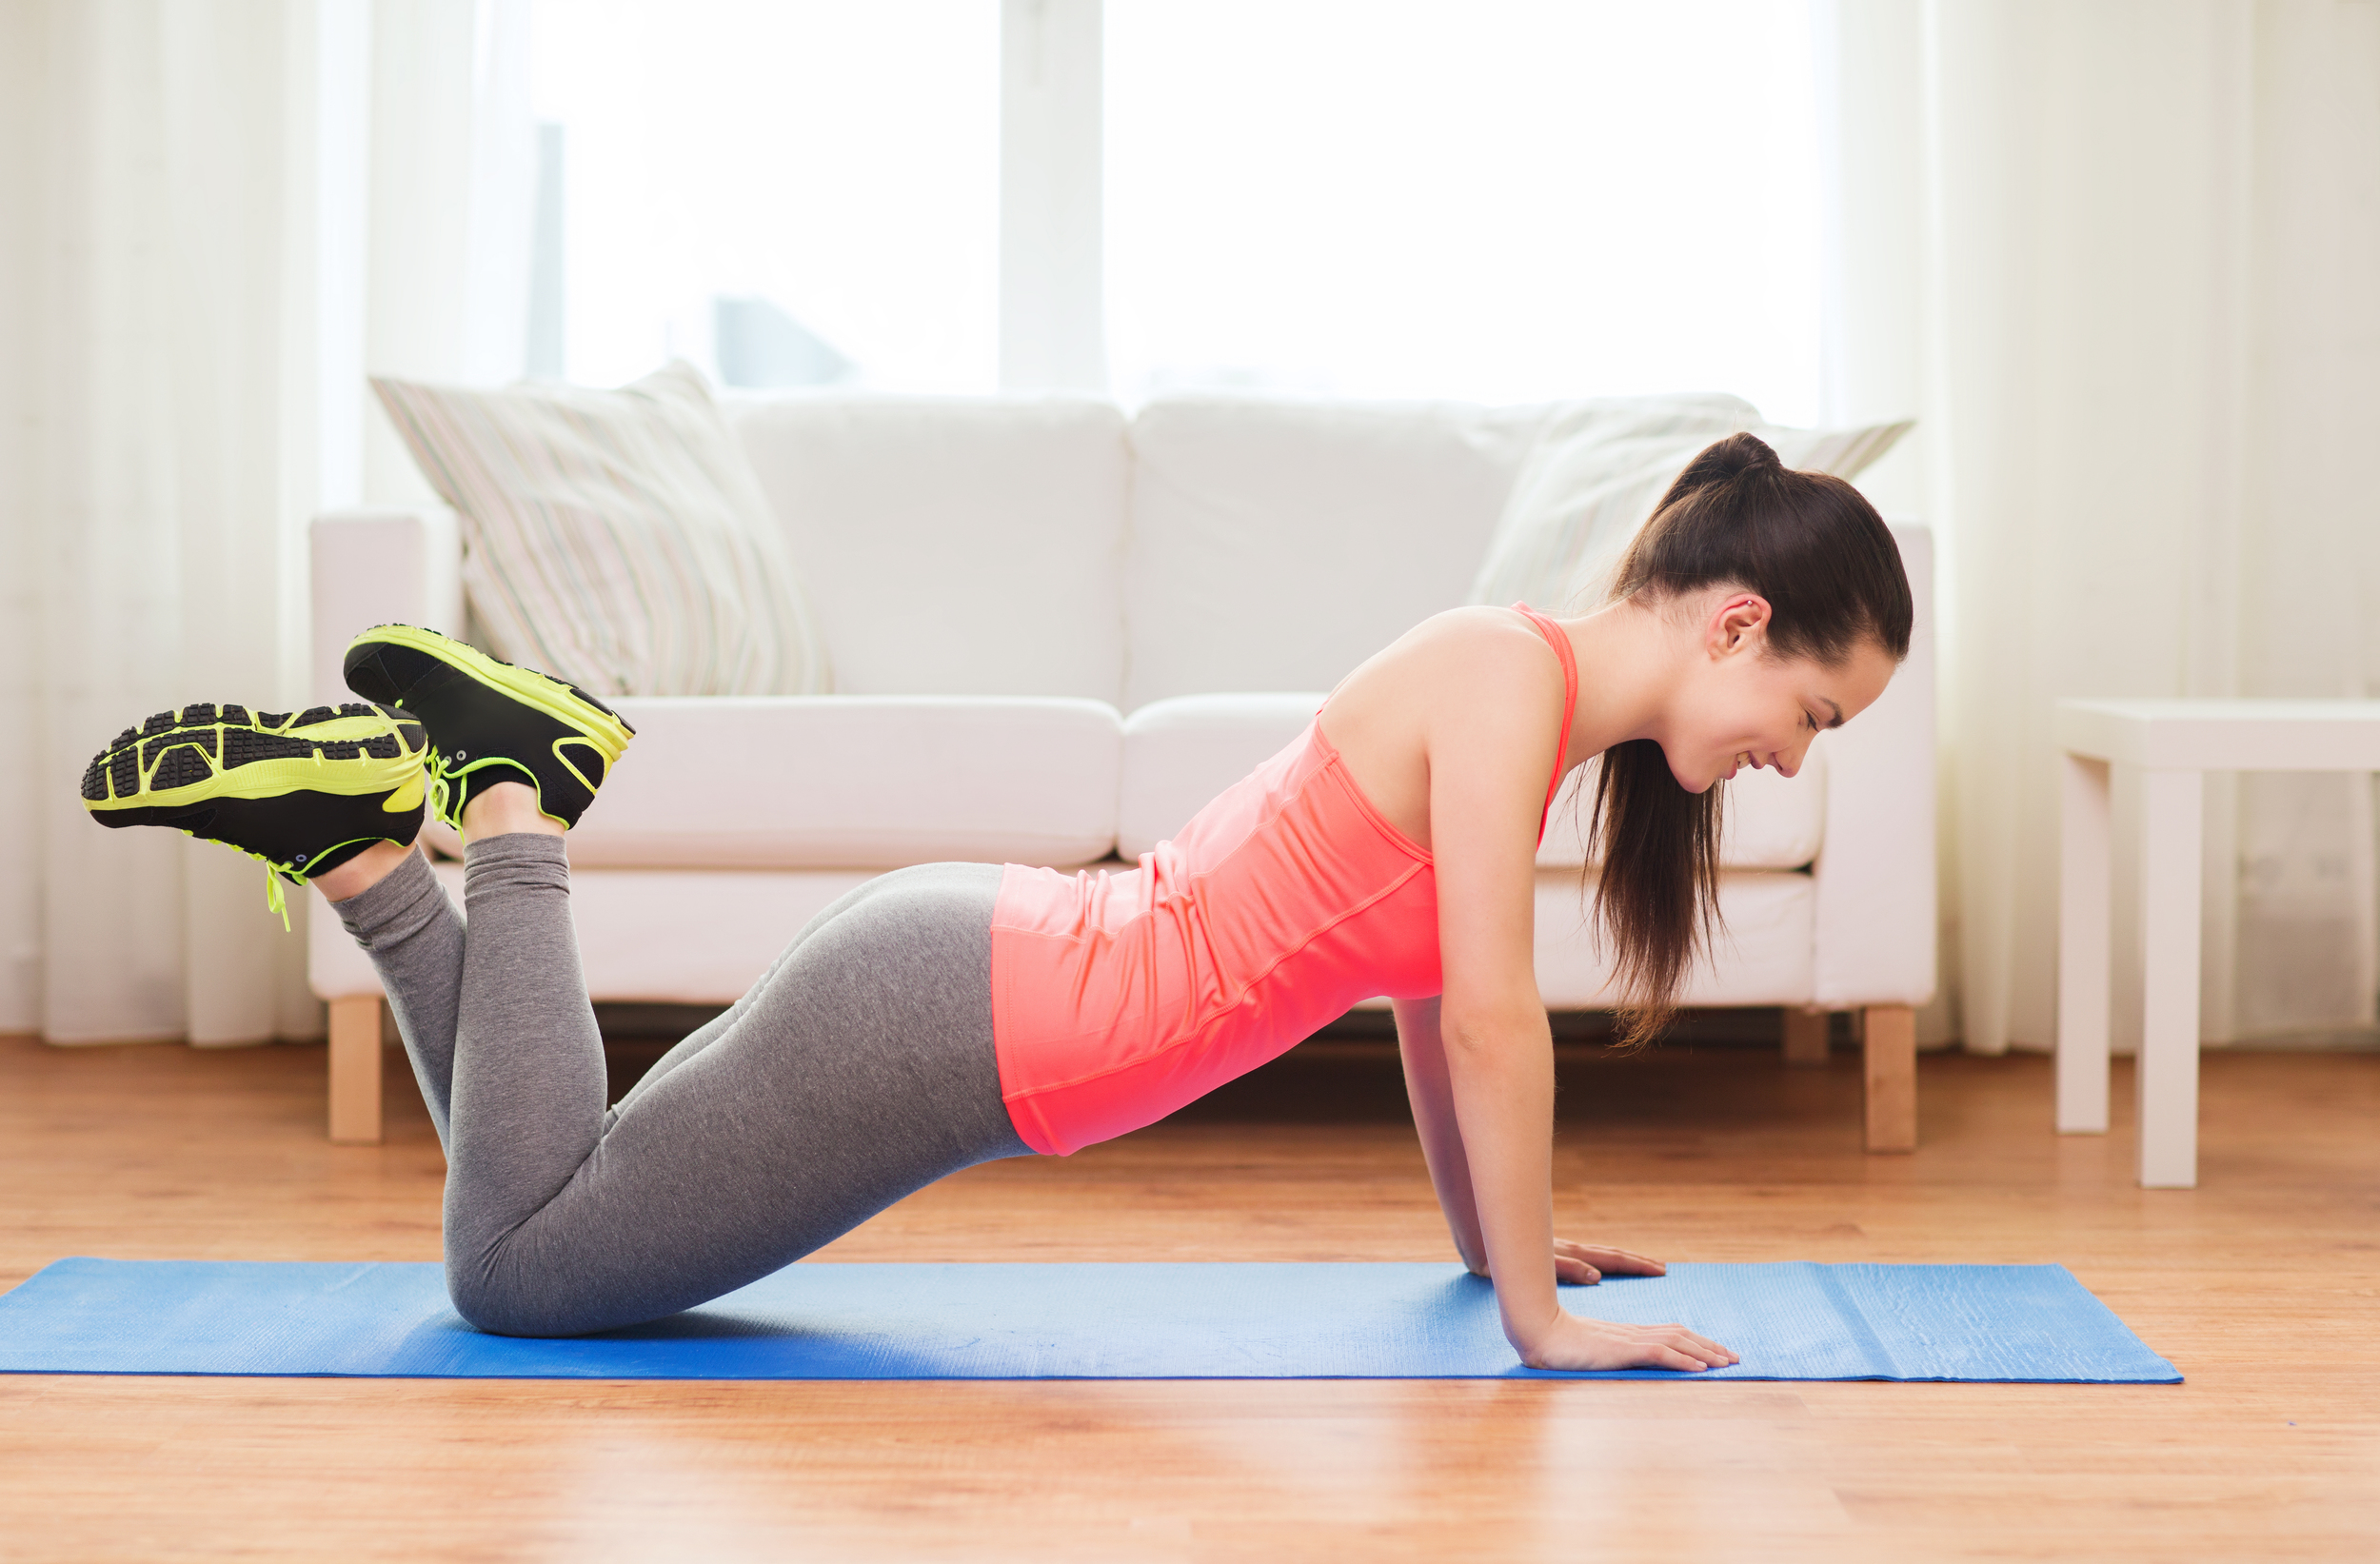 Exercise to increase metabolic rate, release endorphins and get strong and lean. bellamagazine.